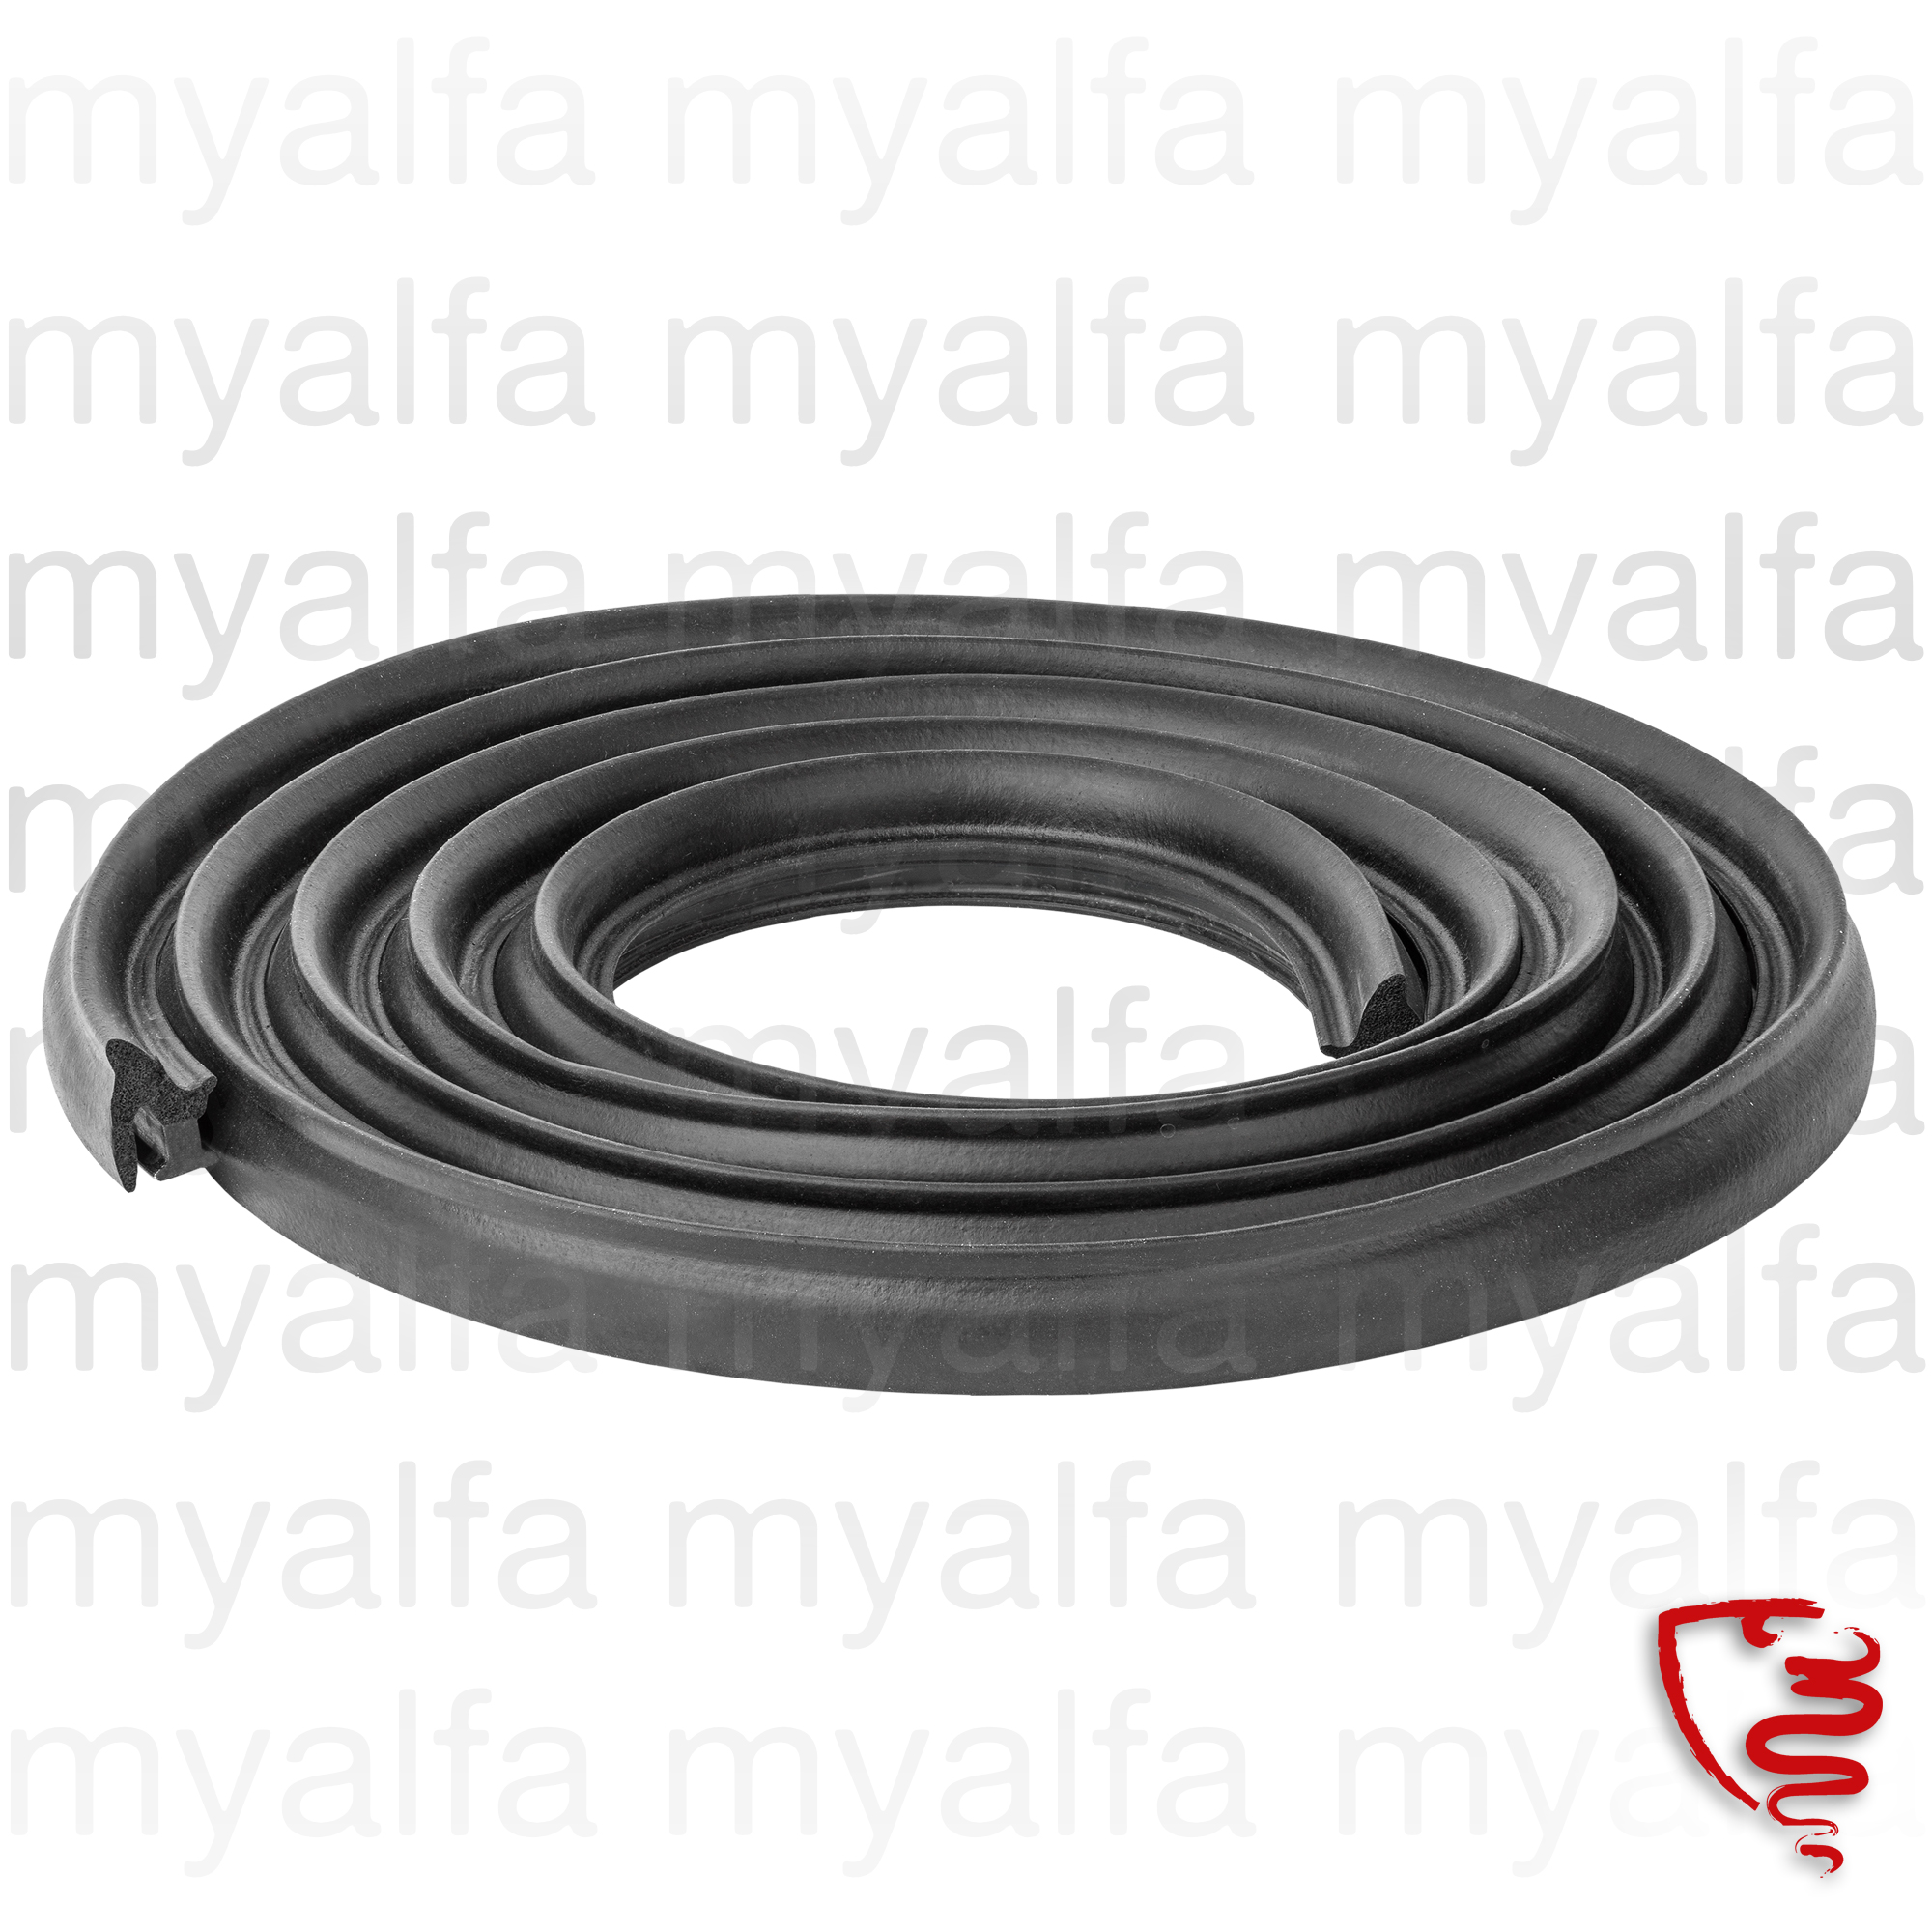 Rubber door - both doors and sides E / D and F / T for 105/115, Giulia, Berlina, Body parts, Rubber parts, Door seals